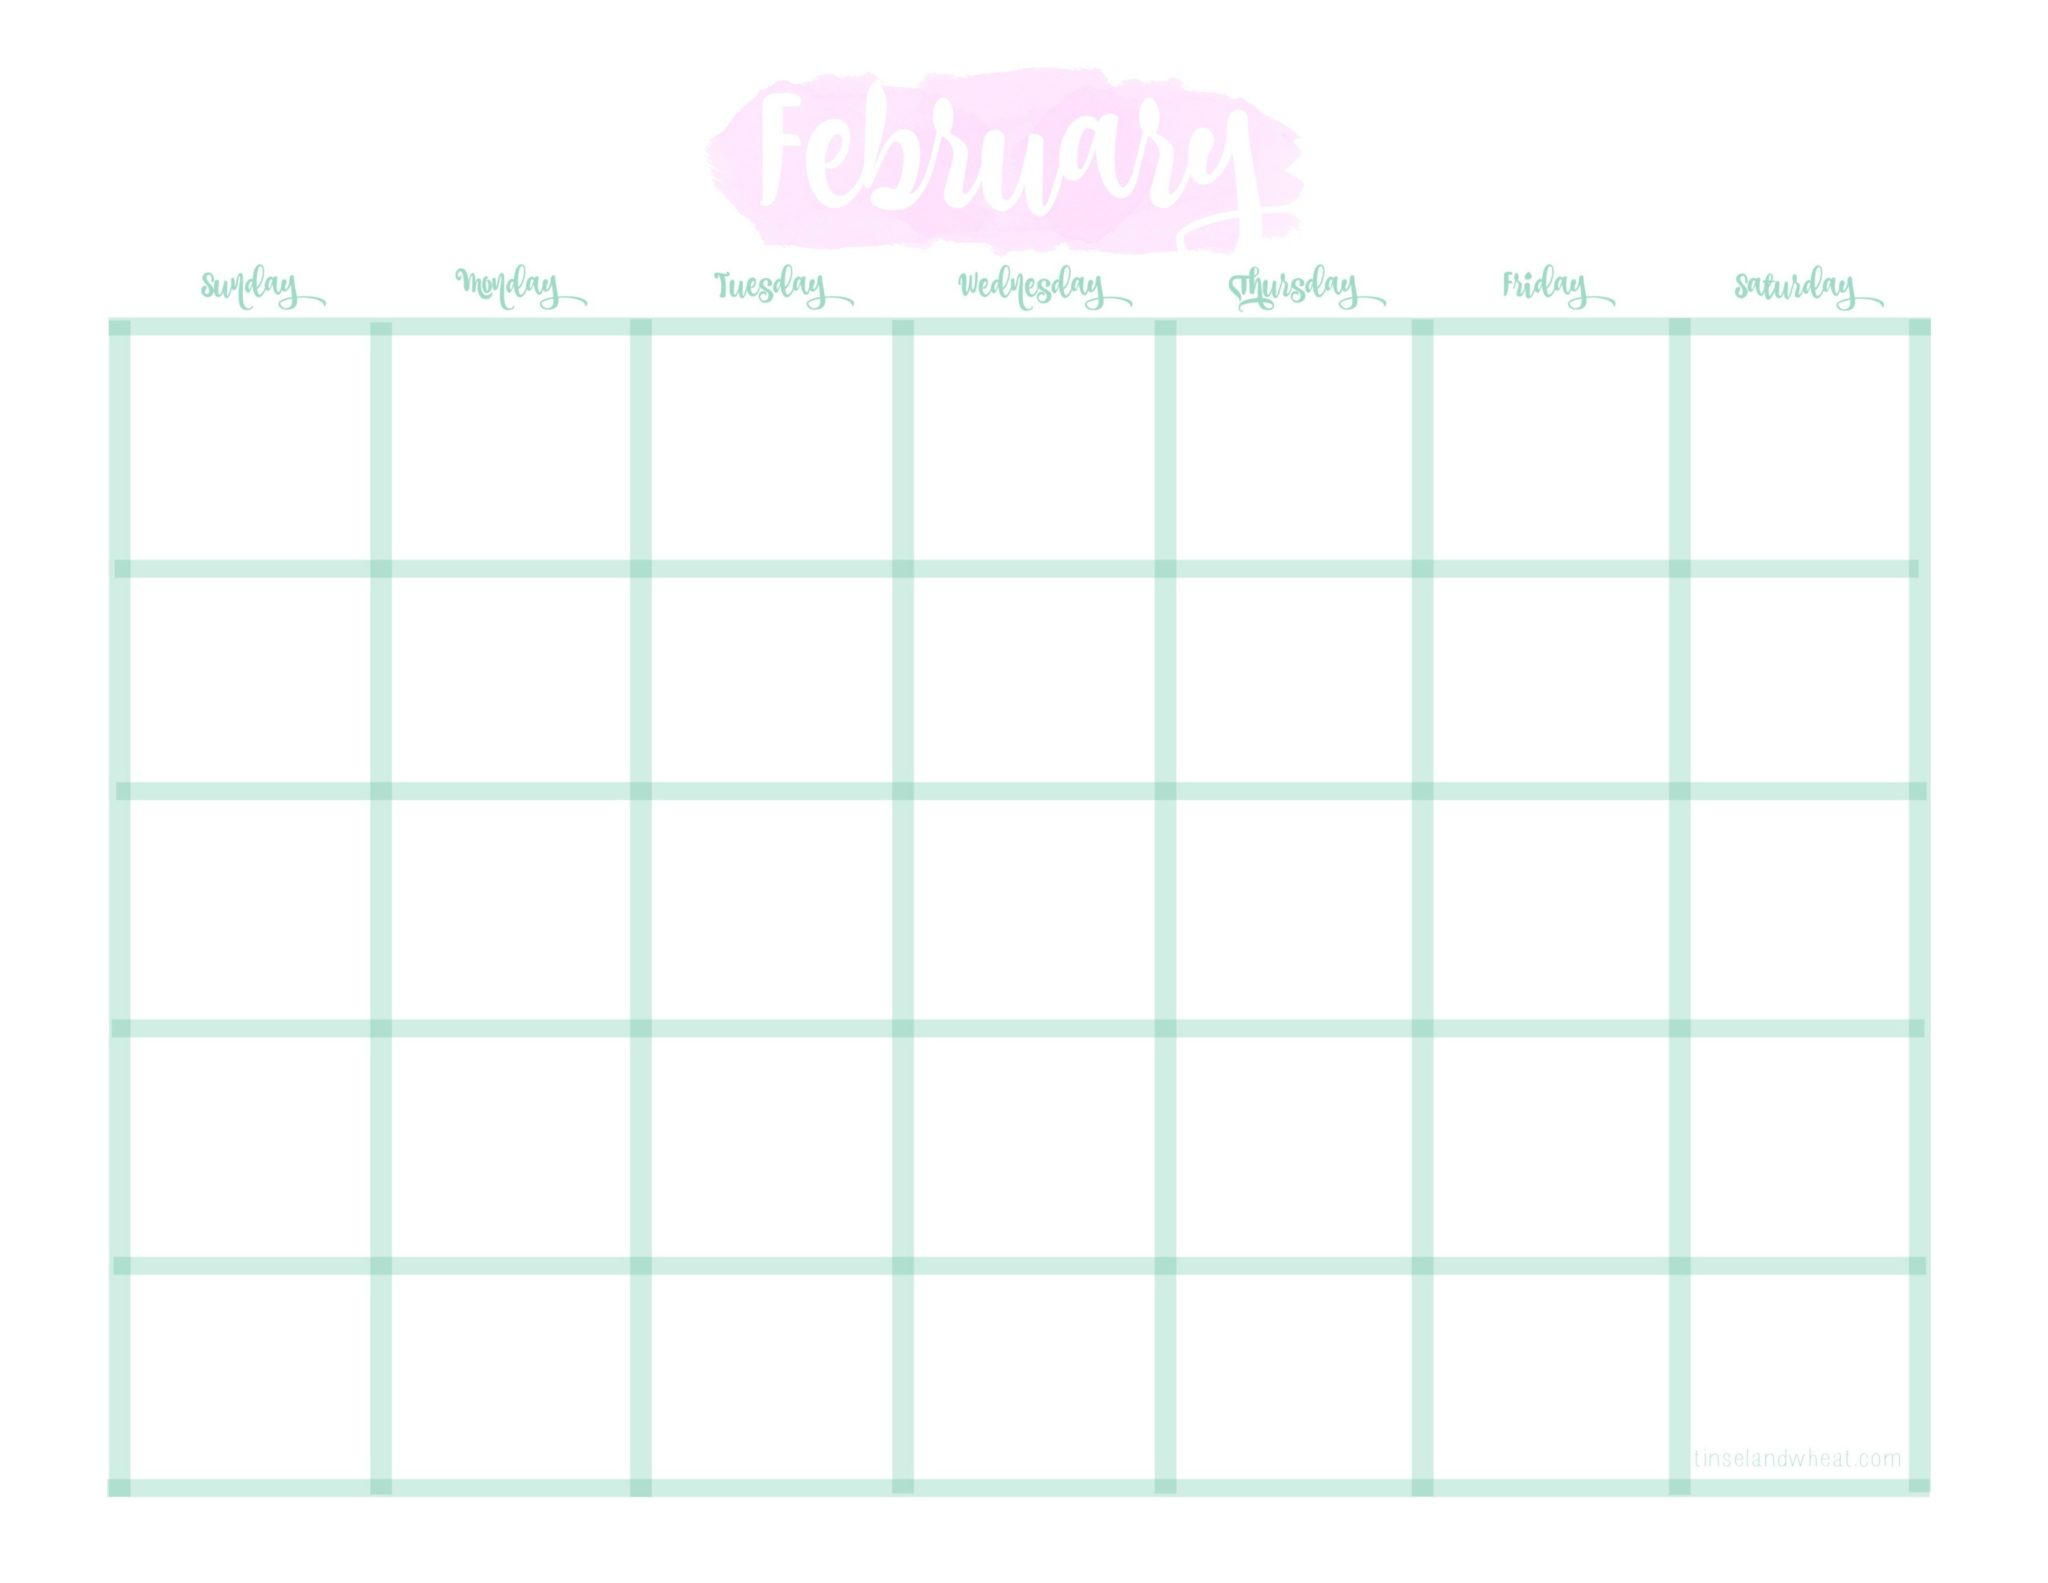 2 February Calendar by Tinsel & Wheat